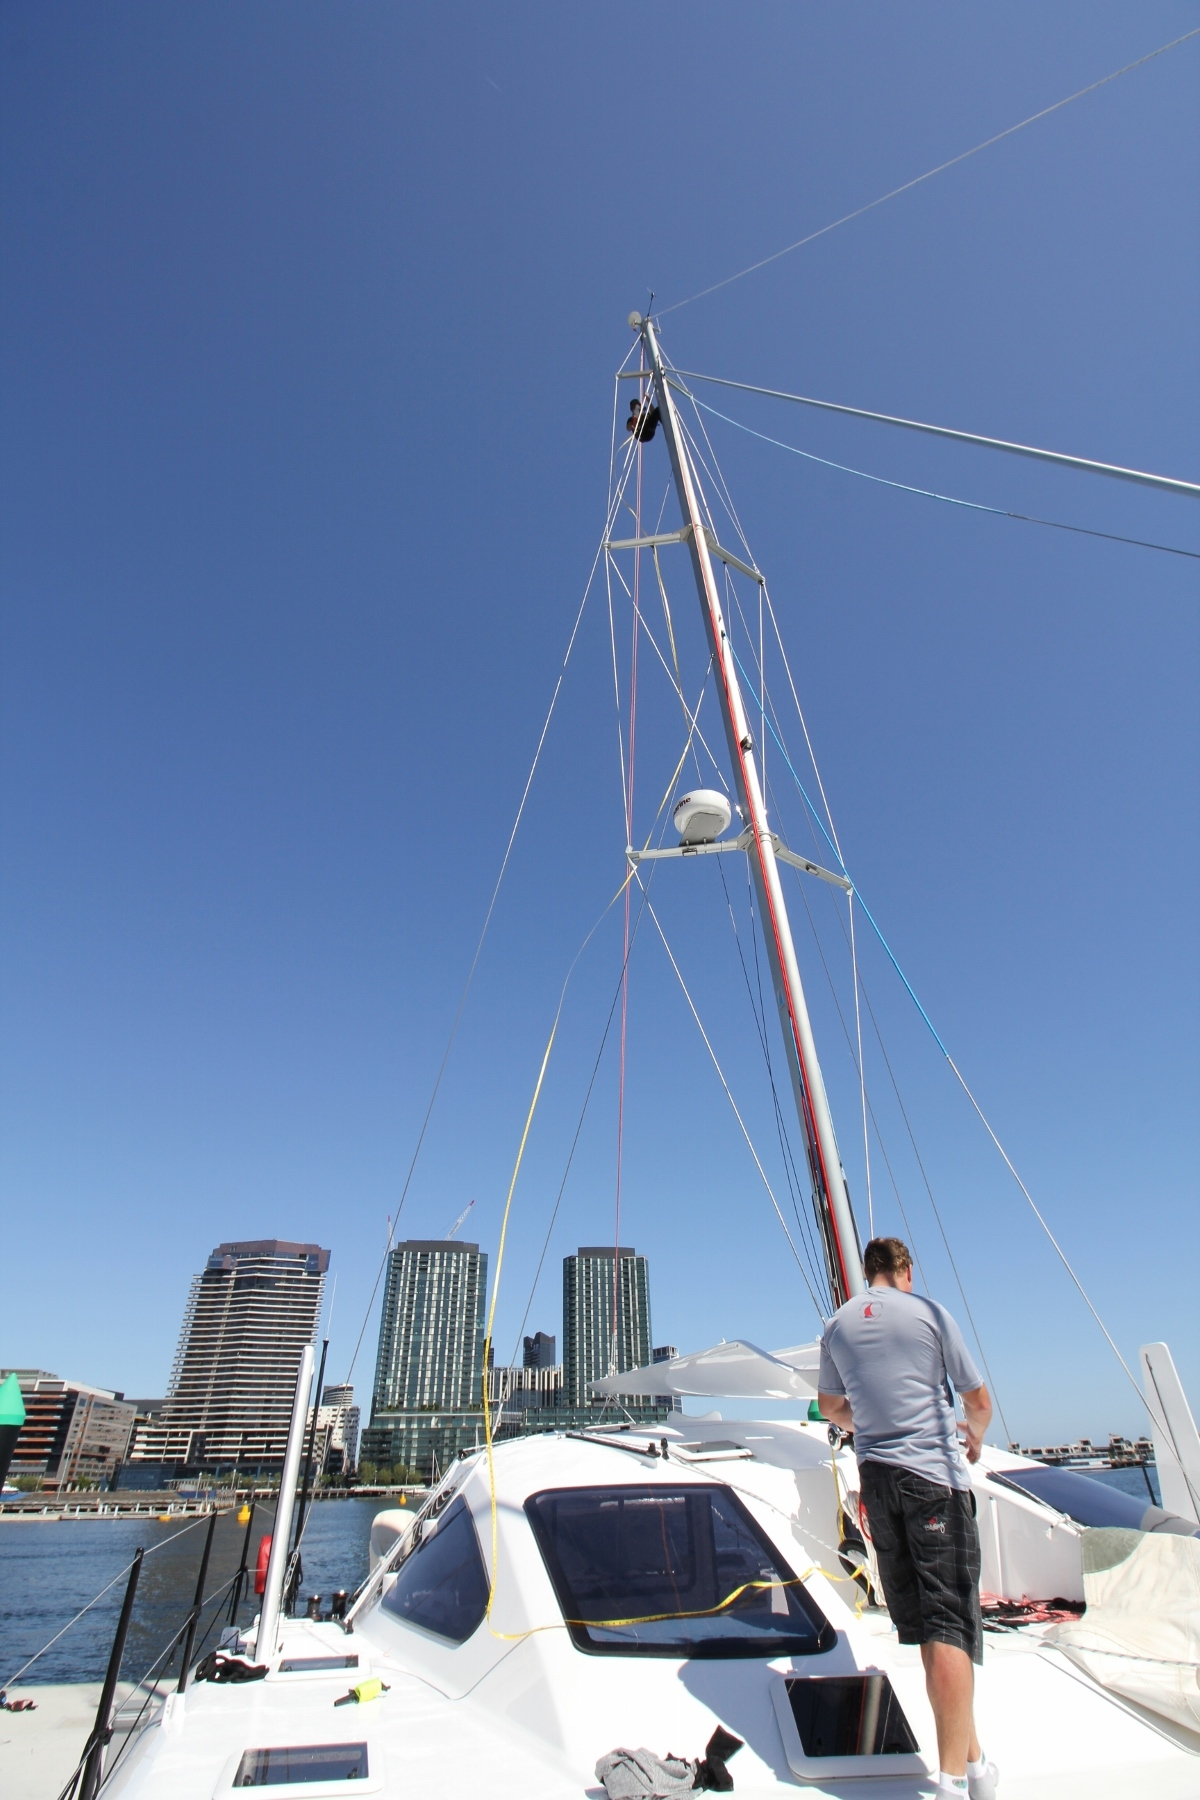 Rob Meizer from Ullman Sydney came down and completed the measure up for the sails. The time spent to do the physical measure up rather than building the sails off the drawings will make for the best fit and easy use of ROAM's sail wardrobe.